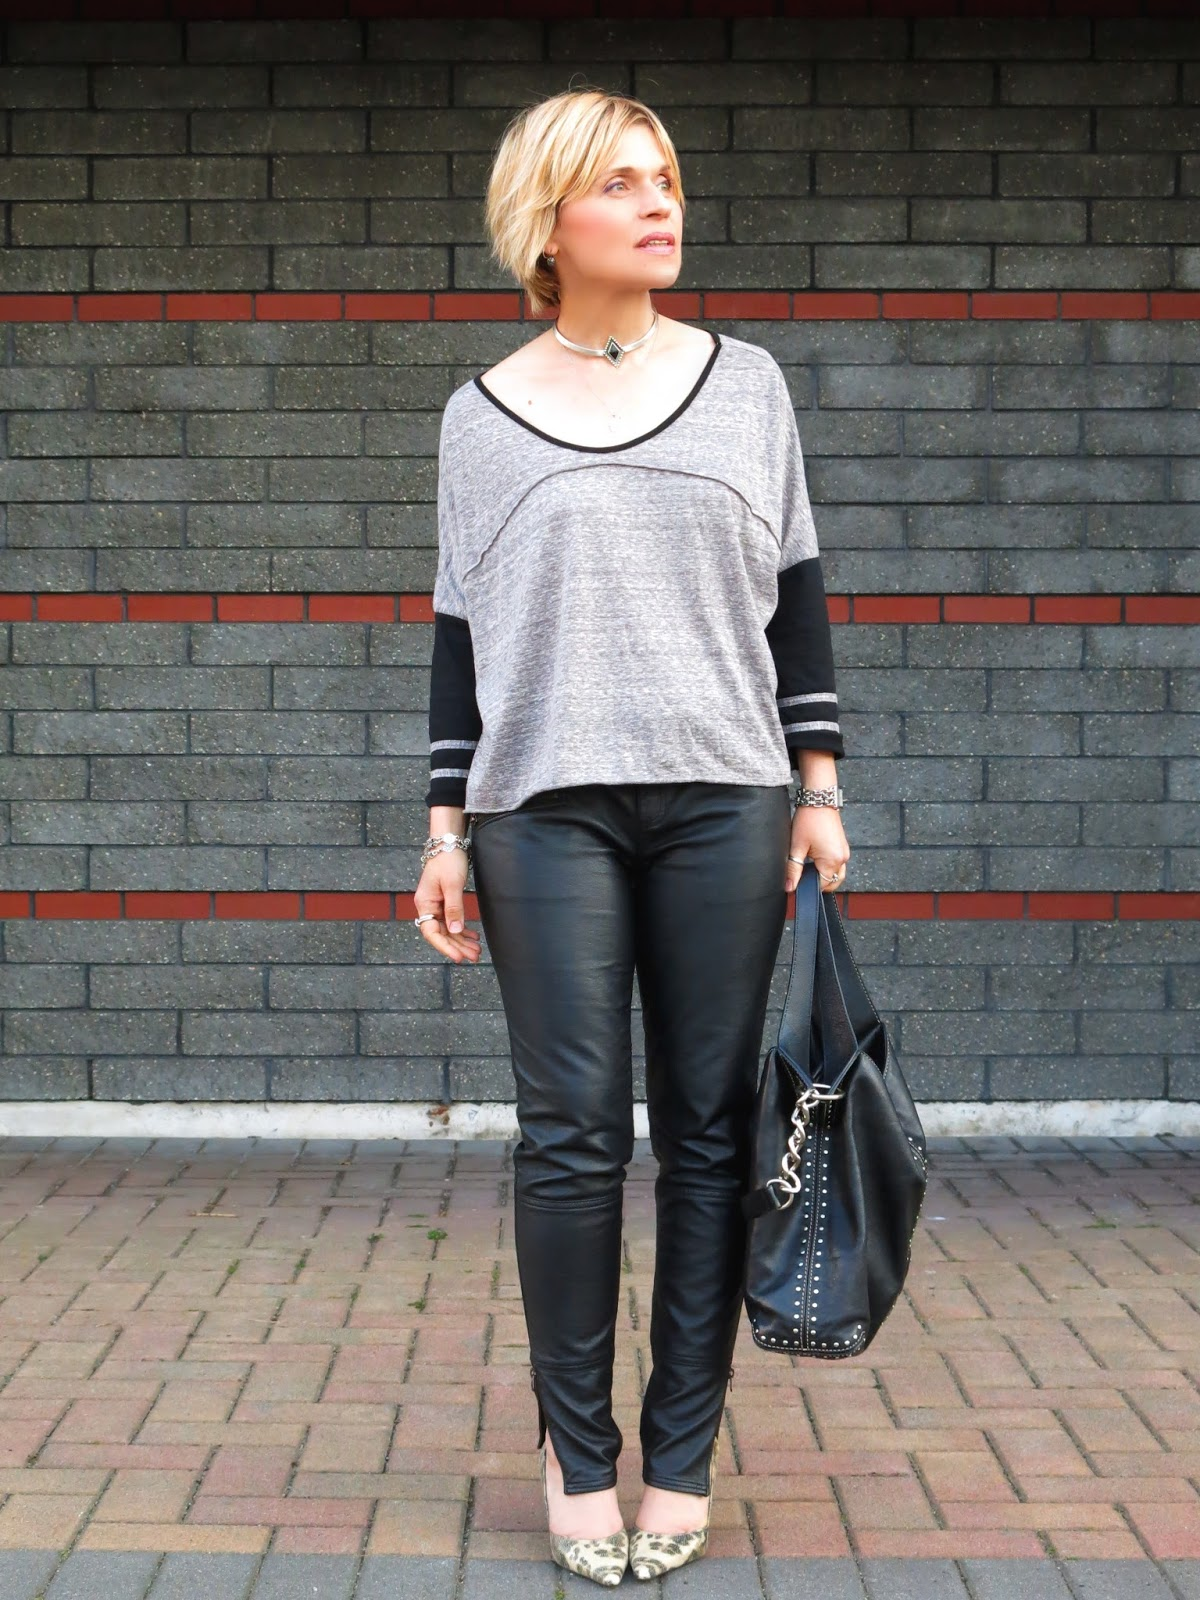 styling vegan leather jeans with long-sleeve baseball tee and animal-print pumps